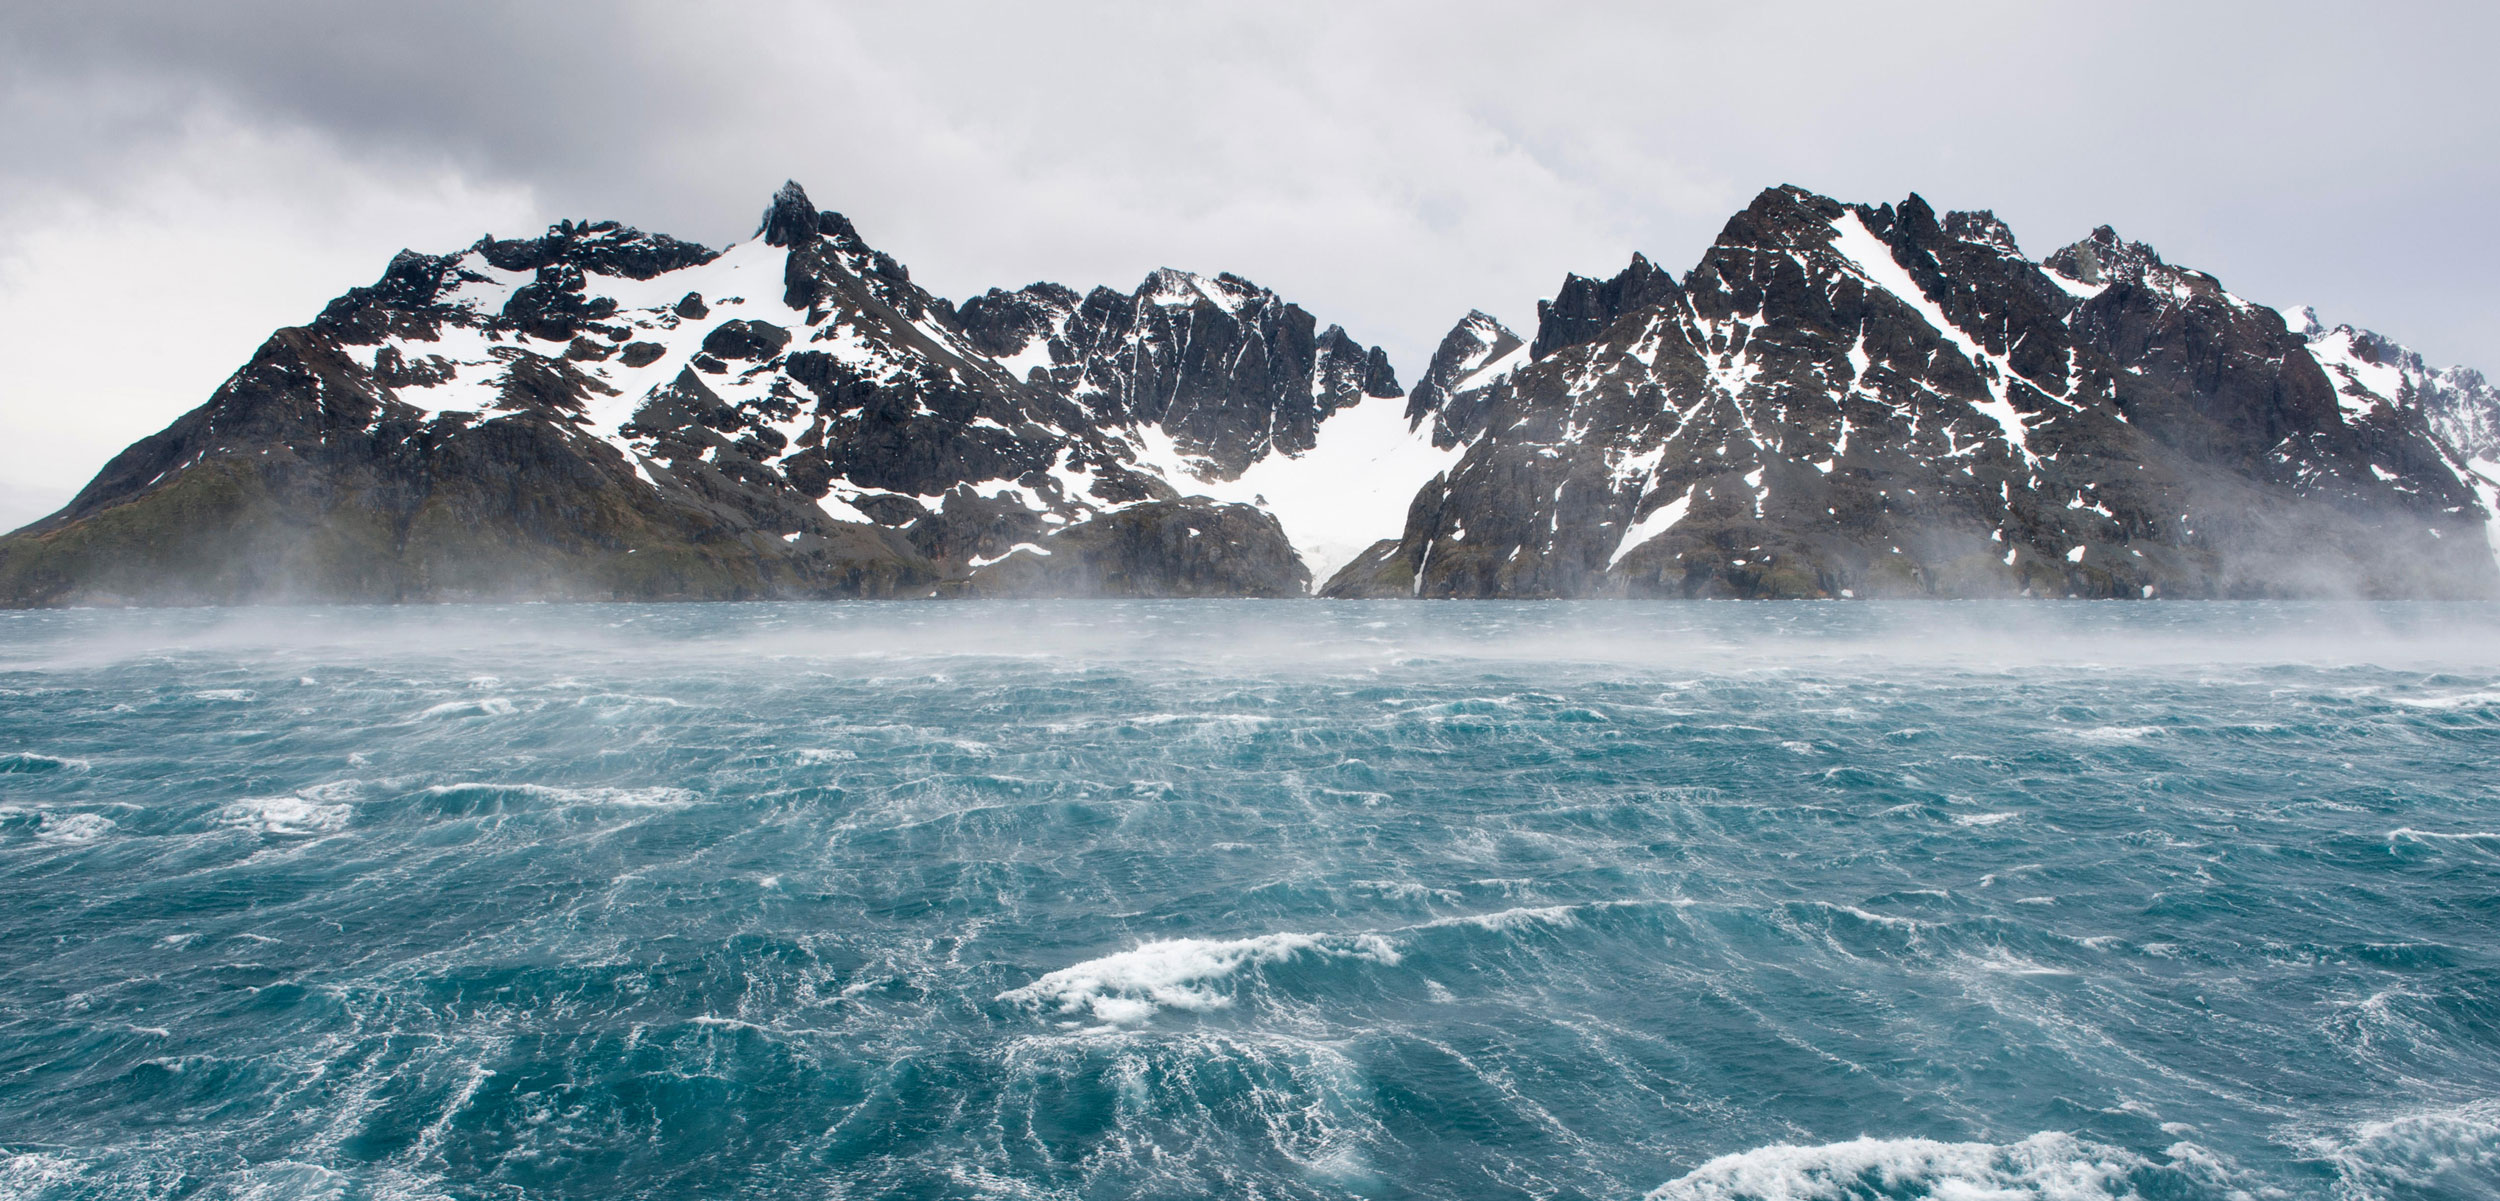 Stormy waters and rugged mountains, Drygalski Fjord, South Georgia Island, Antarctica